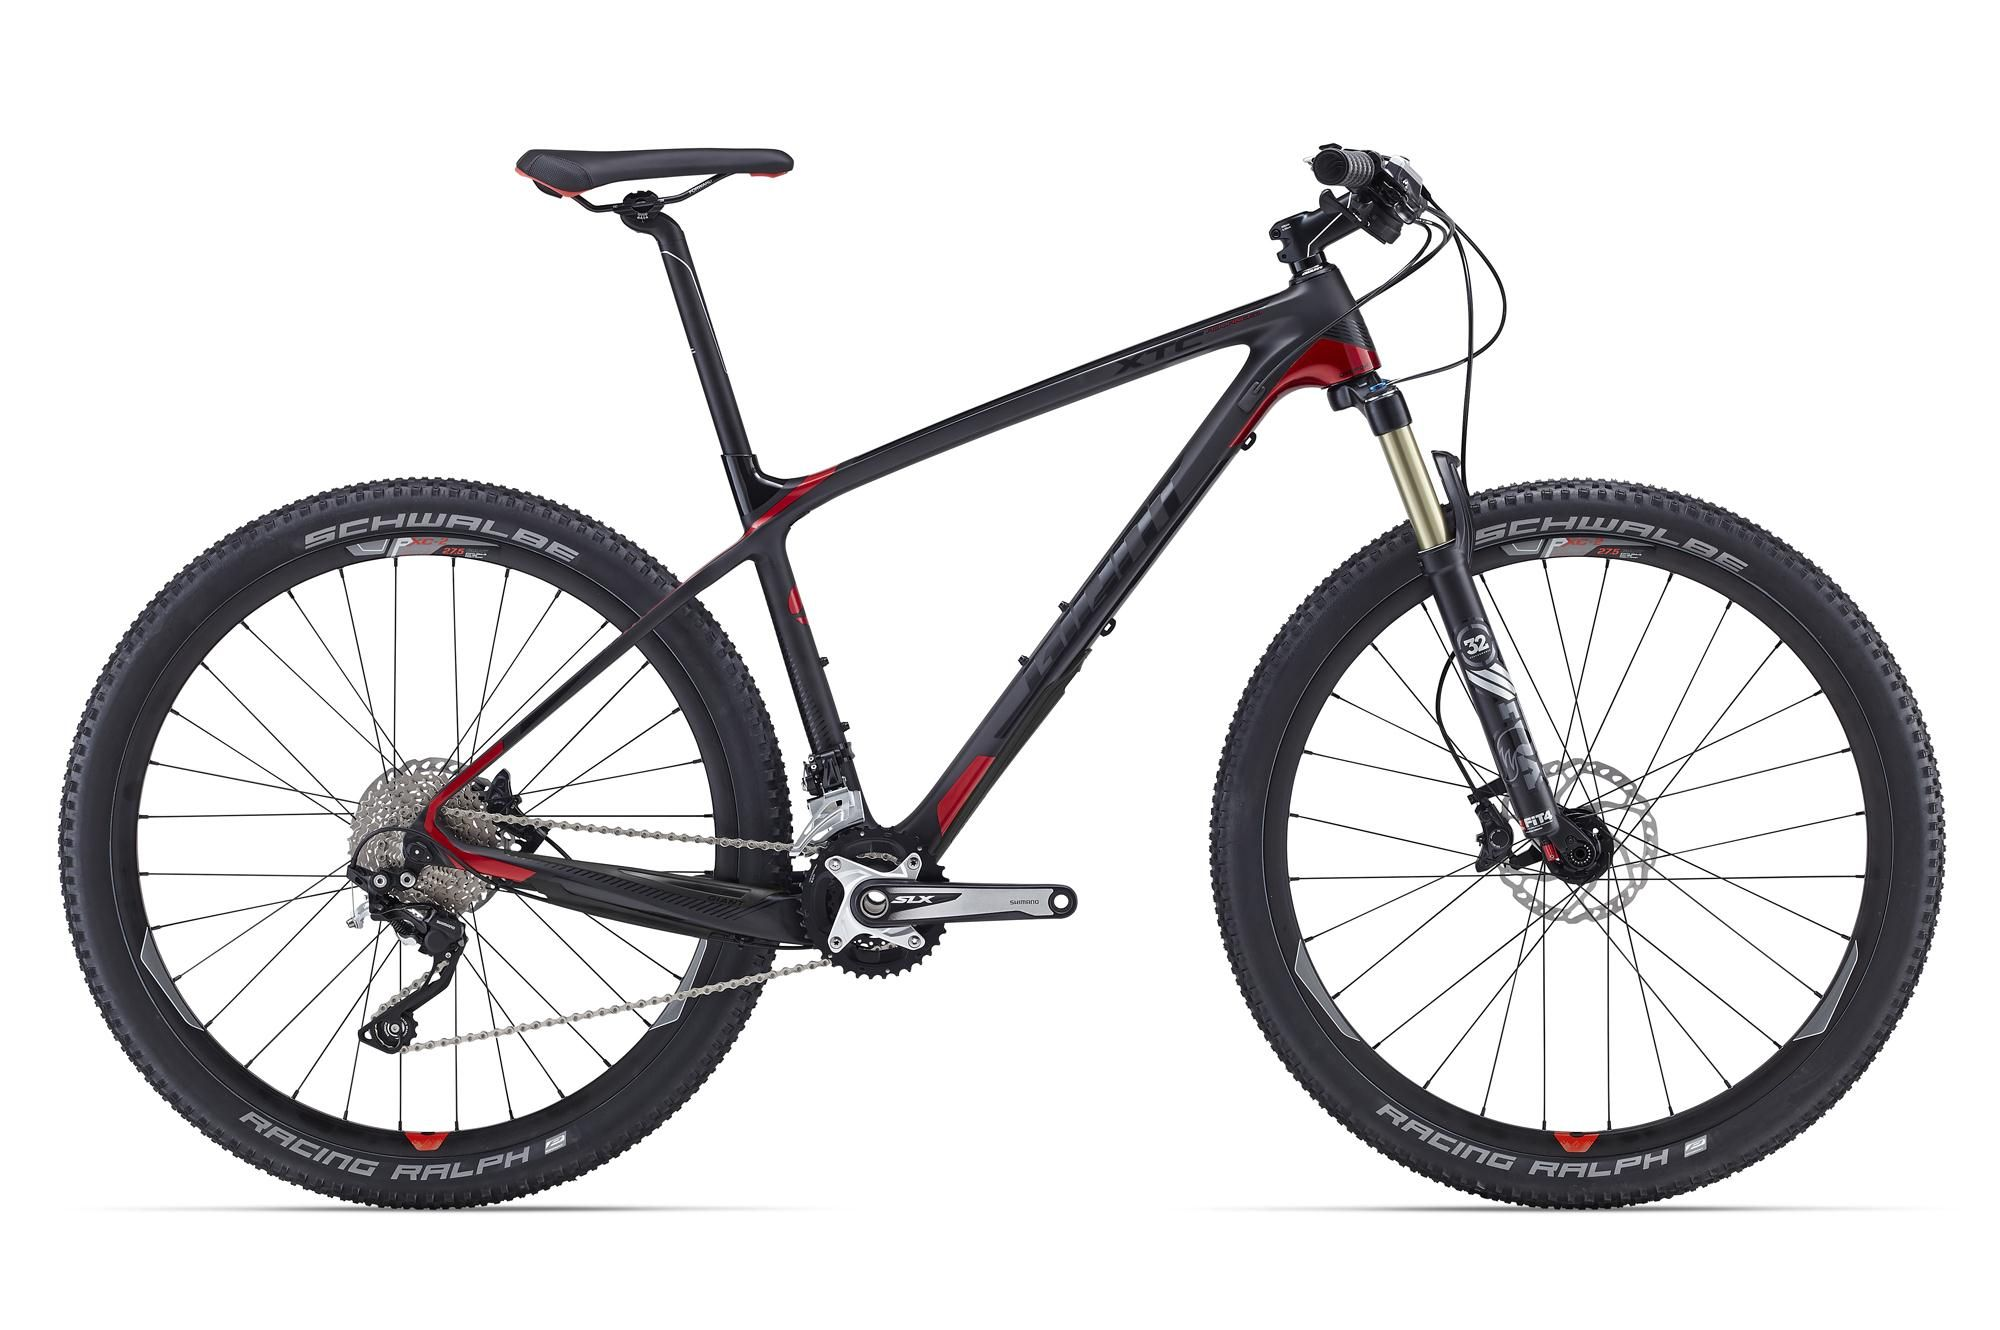 Велосипед Giant XtC Advanced 27.5 2 2016 велосипед giant anthem advanced 27 5 2 2016